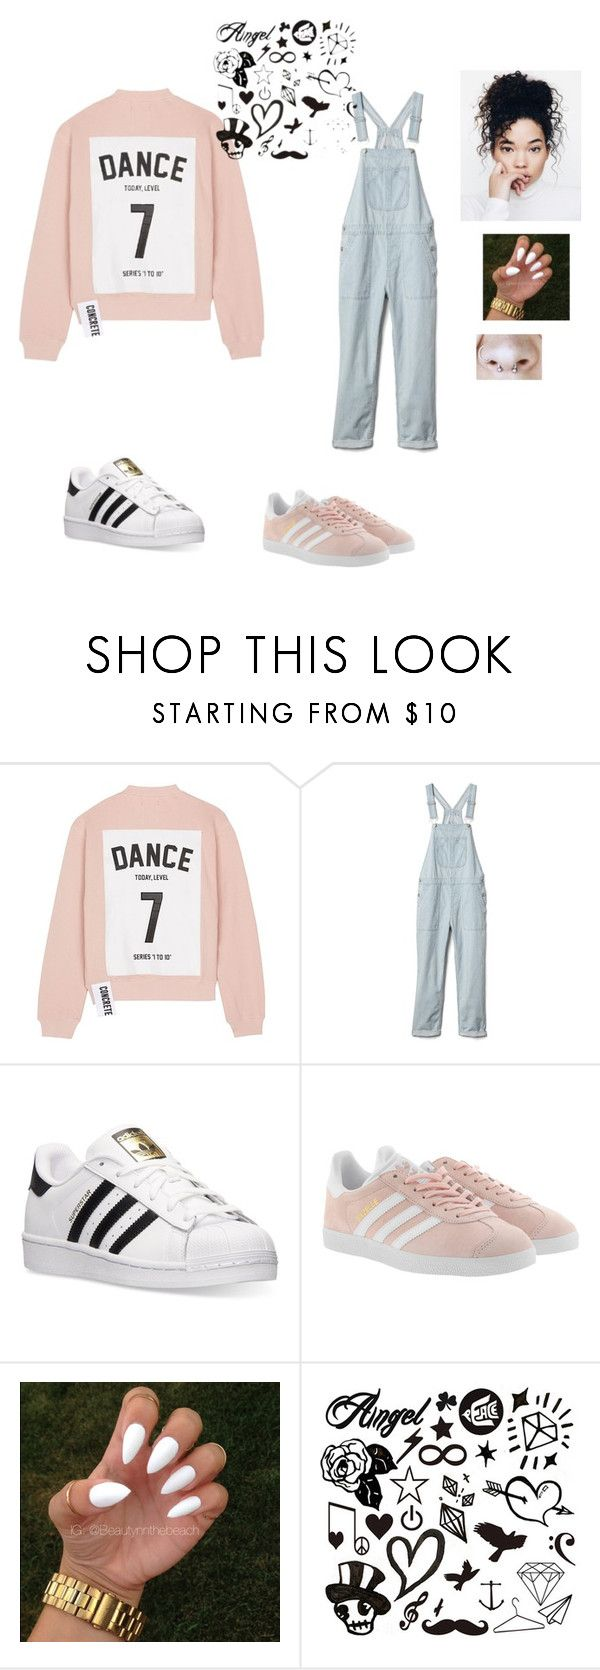 """""""Aesthetic ⬇️"""" by deedee364 ❤ liked on Polyvore featuring Studio Concrete, Gap, adidas and adidas Originals"""